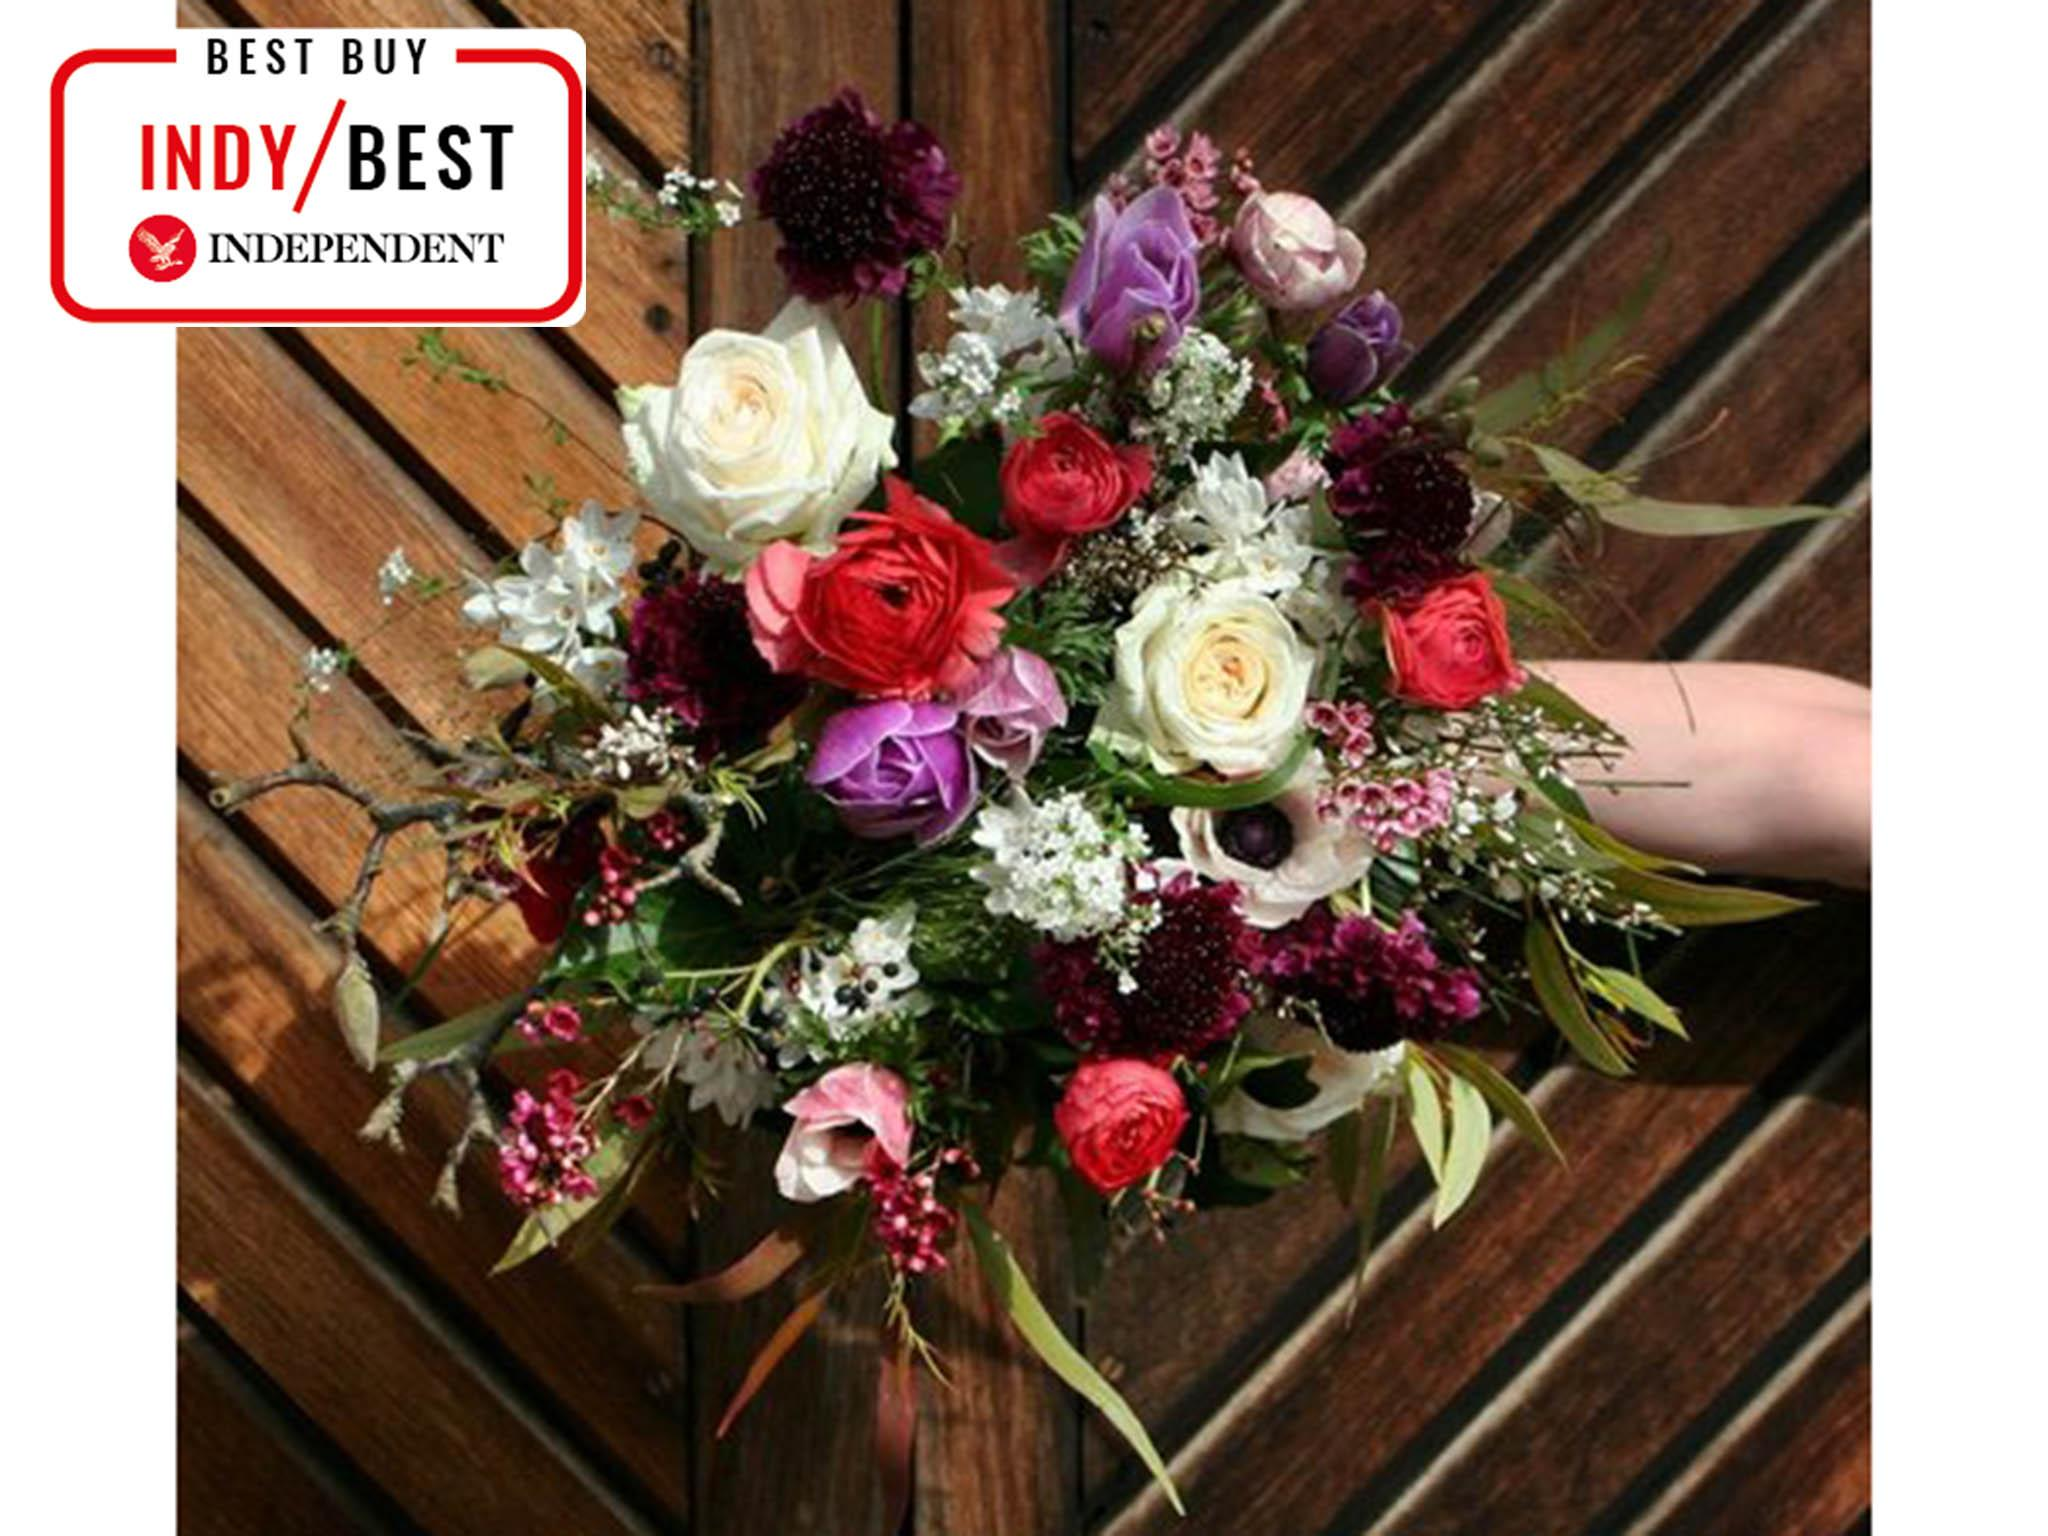 5a51741f1917 Mother s Day 2019  15 best flowers to brighten her special day